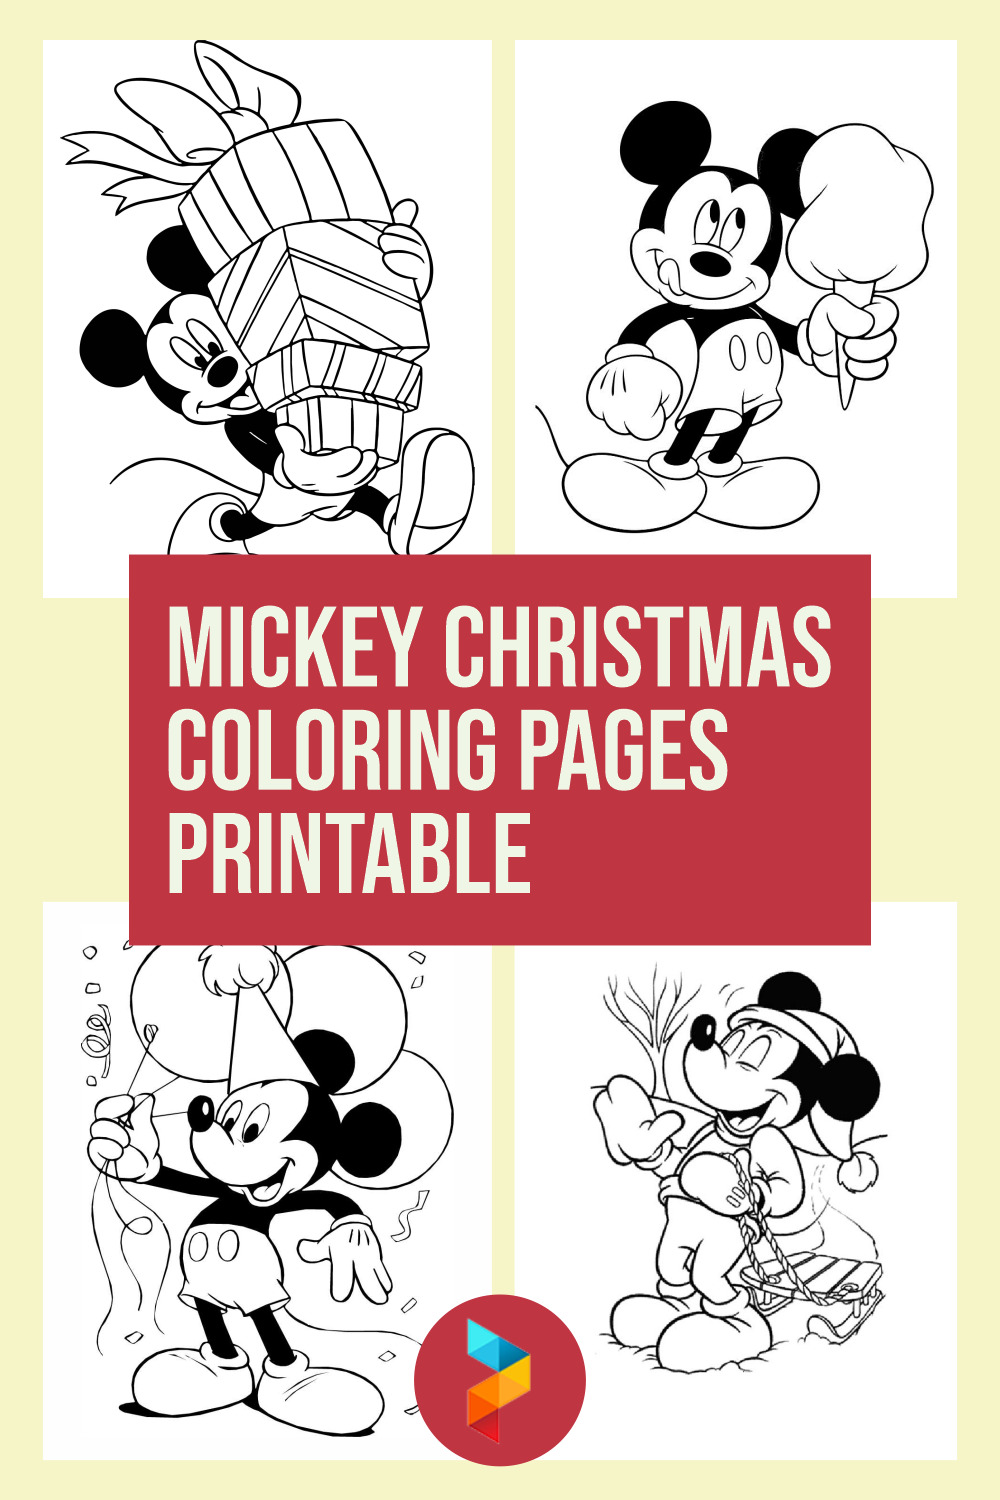 5 Best Mickey Christmas Coloring Pages Printable Printablee Com